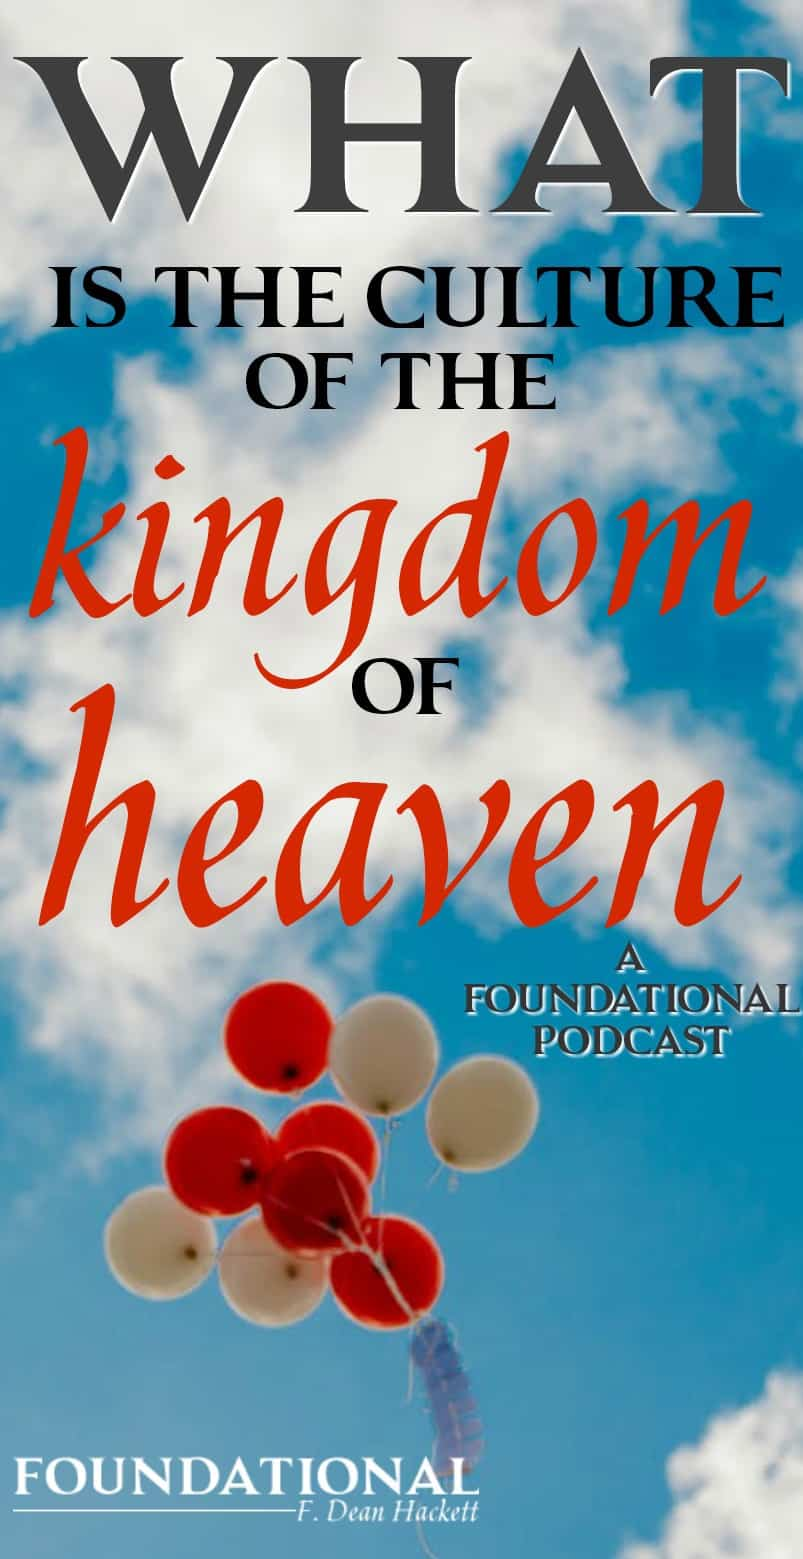 What is the culture of the Kingdom of Heaven? Jesus gave us authority to do miracles, signs and wonders in His name, to bring the culture of heaven to earth. Foundational | F Dean Hackett | Christianity | Christian living | Christian blog | Christian faith | Kingdom of Heaven | Miracles | Signs and Wonders | #christianblog #christianfaith #spiritualgrowth #Bible #God #miracles #signsandwonders